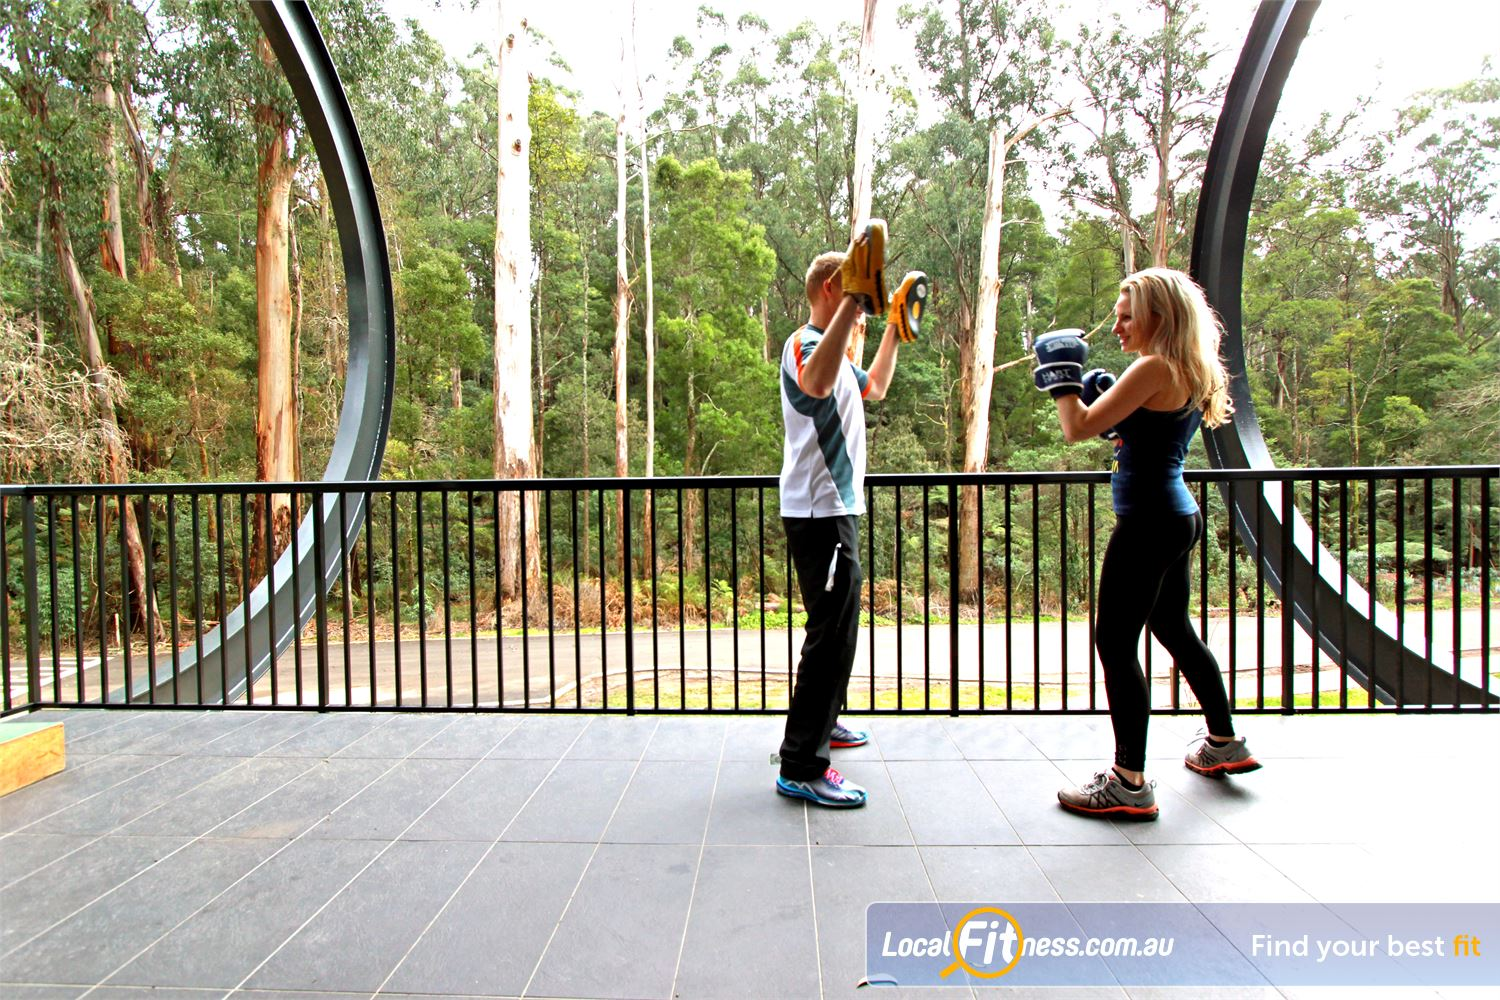 Monbulk Aquatic Centre Near Mount Evelyn Our Monbulk gym provides scenic views of the forest.